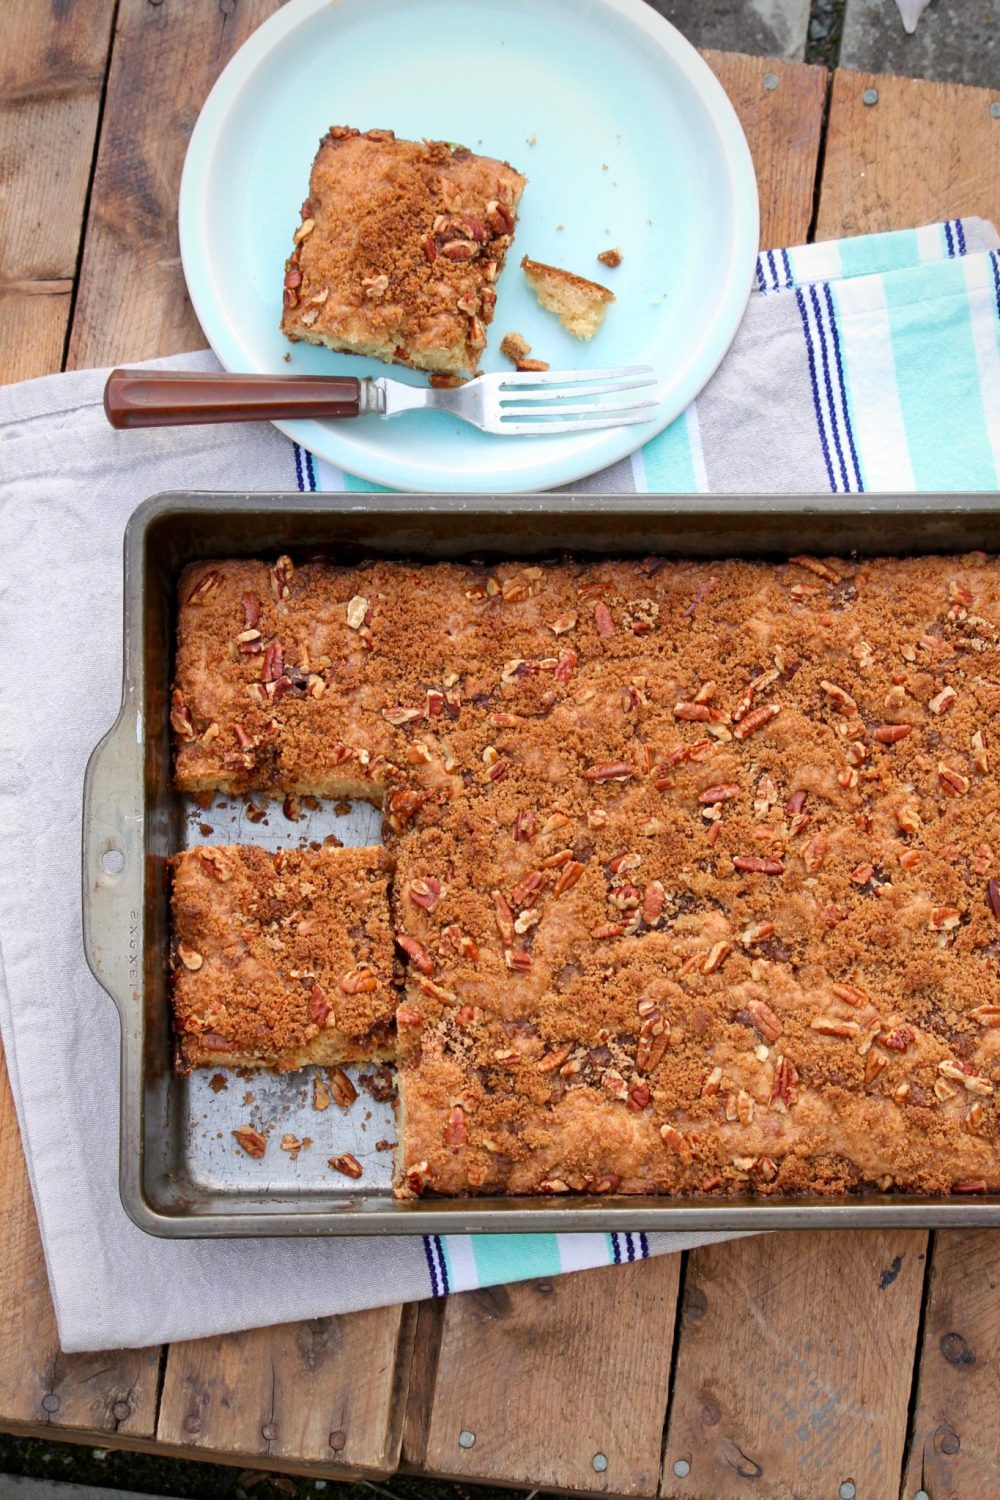 Overnight Cinnamon Pecan Coffee Cake is alongtime family favorite. Classic yet super simple, this recipe tastes just like a good coffee cake should!